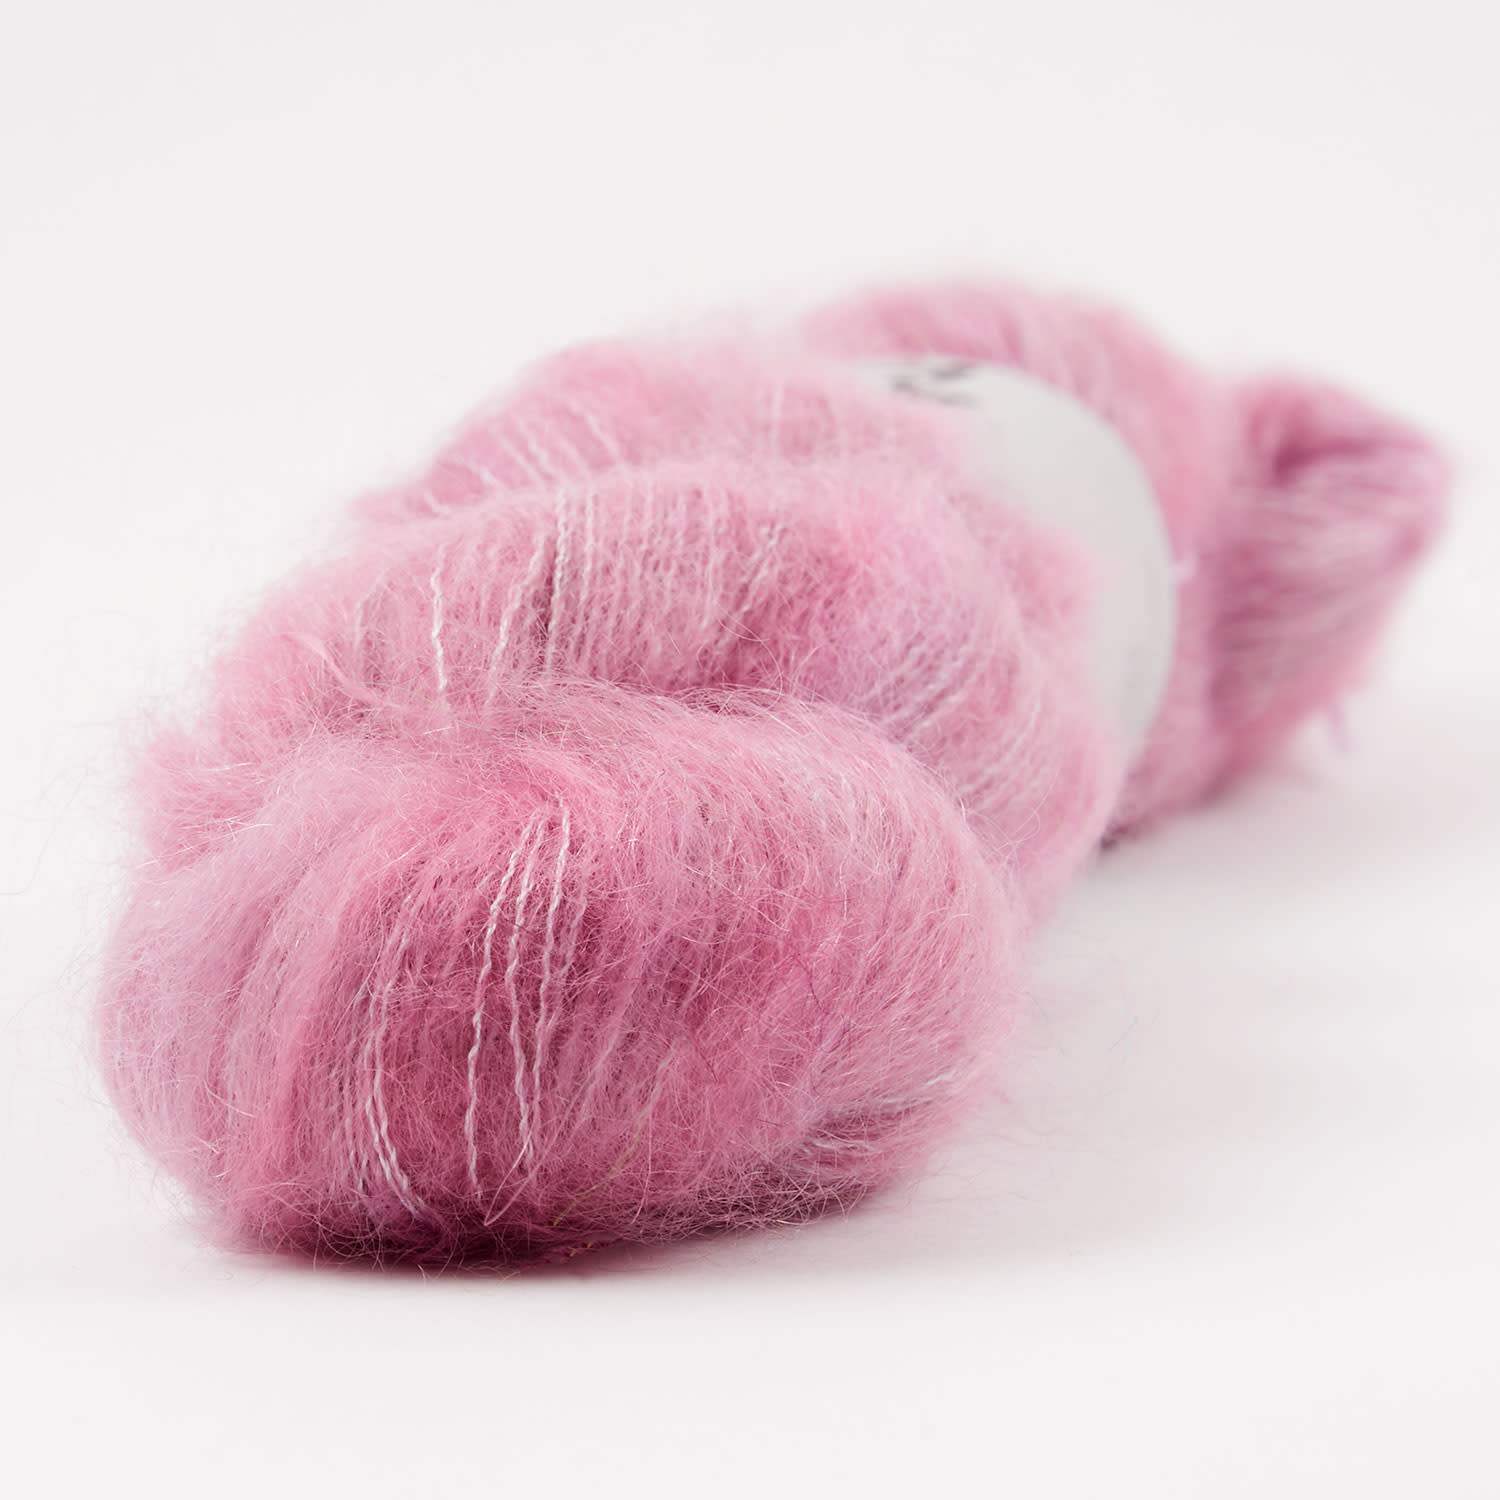 WALK collection KID MOHAIR LACE - FLIEDER